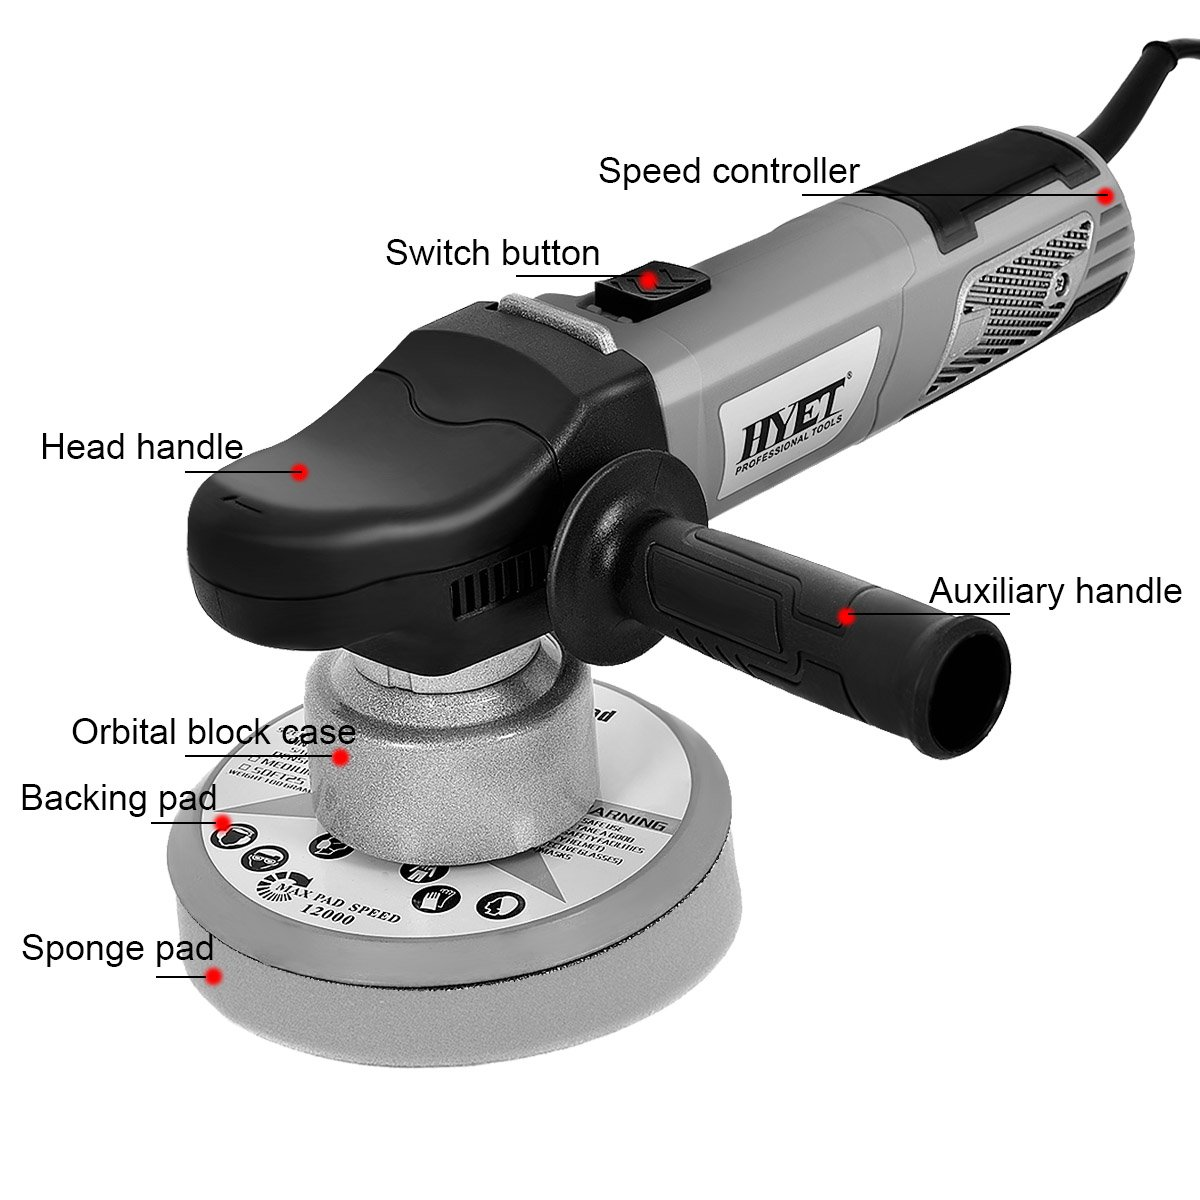 Goplus orbital sander featured image 6